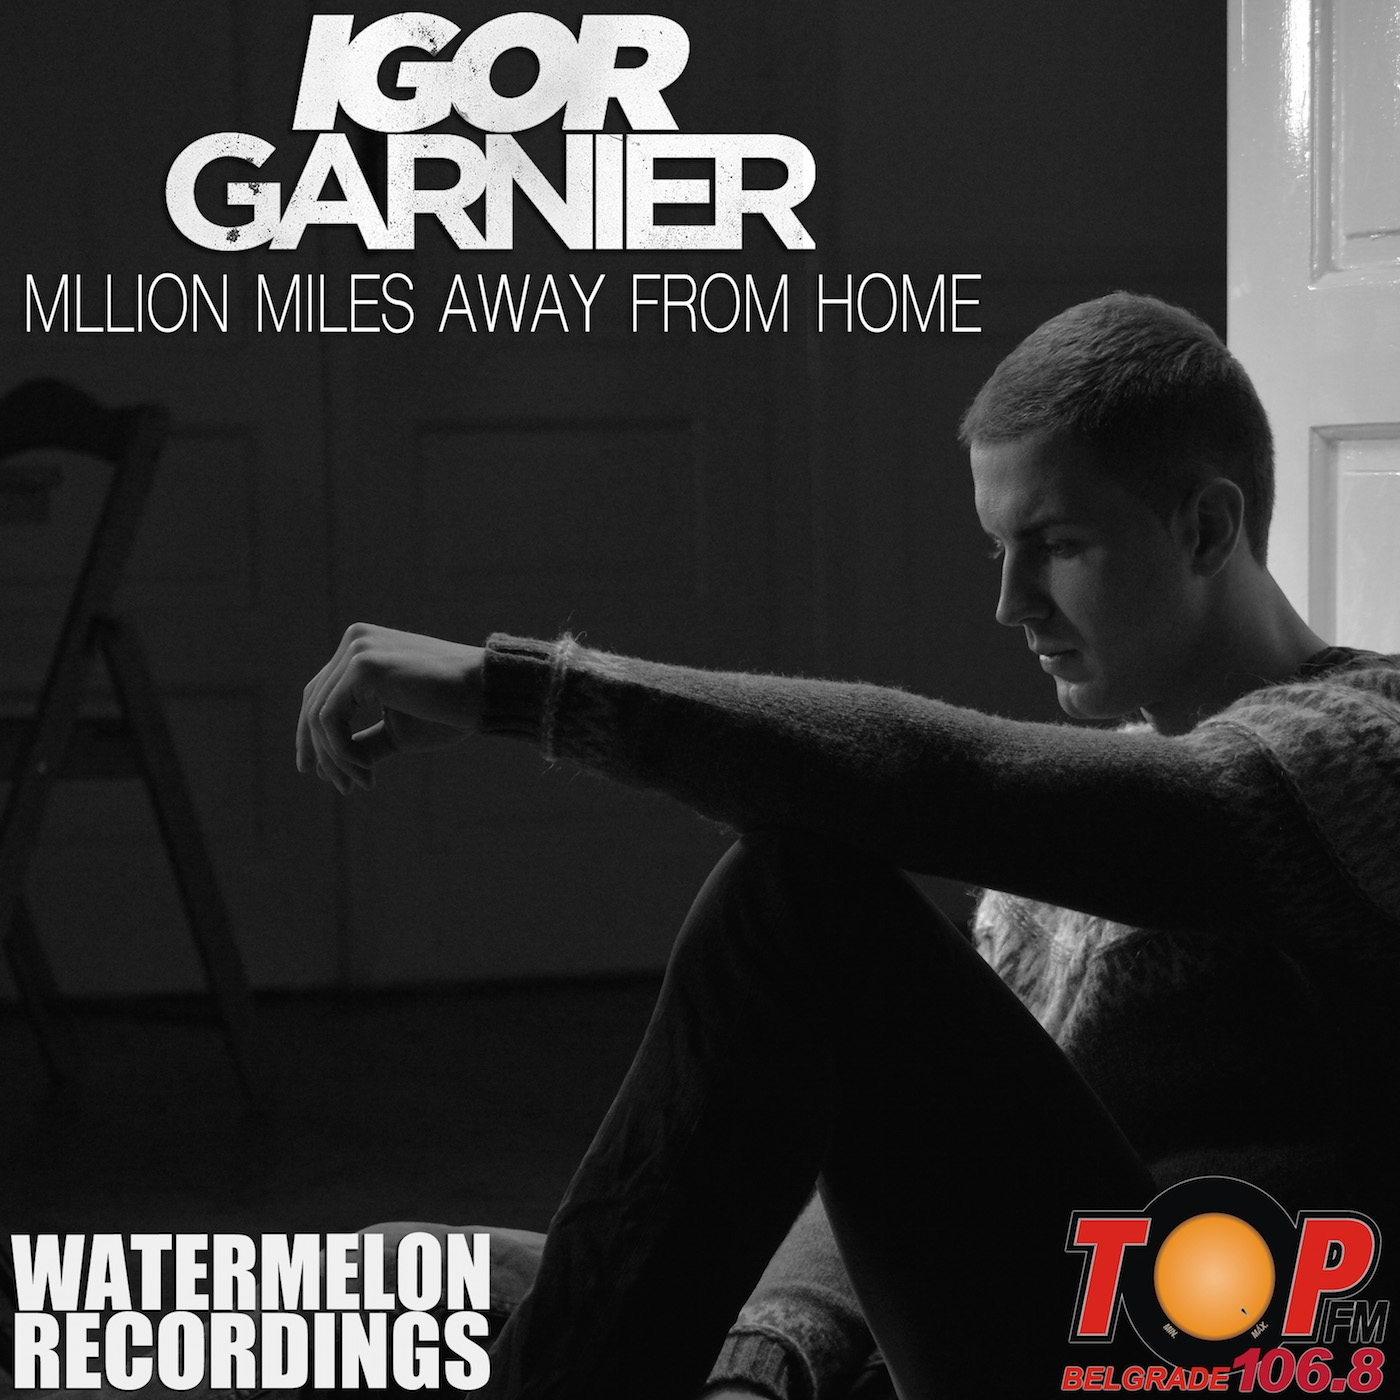 Igor Garnier - Million Miles Away From Home (Original Mix)